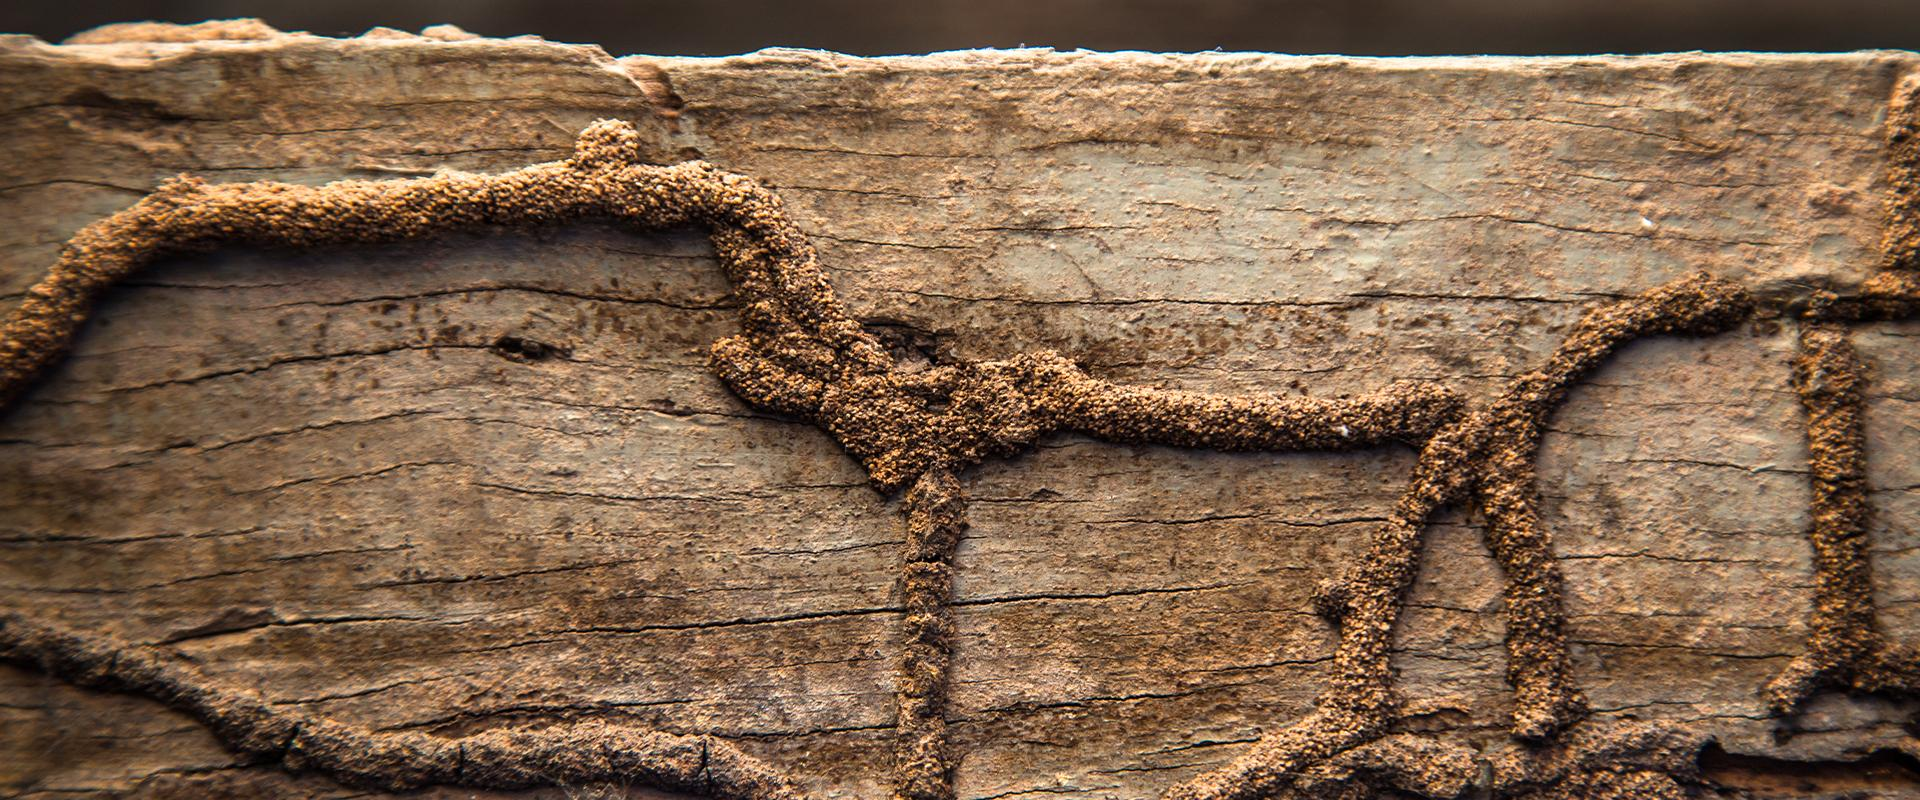 lines of termite tunnels on wood